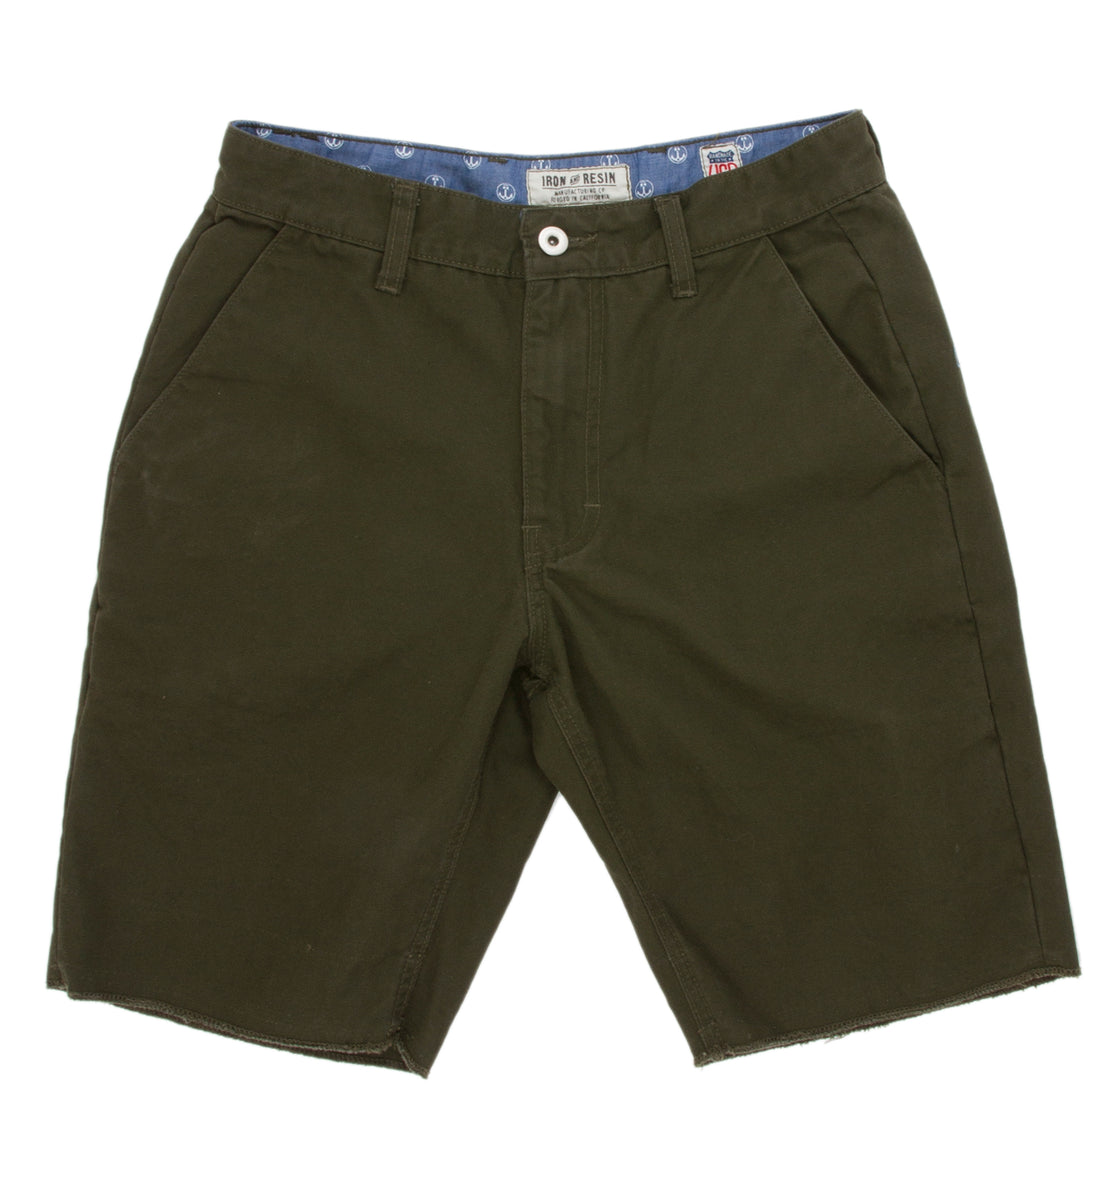 Engineer Chino Short - Bottoms - Iron and Resin